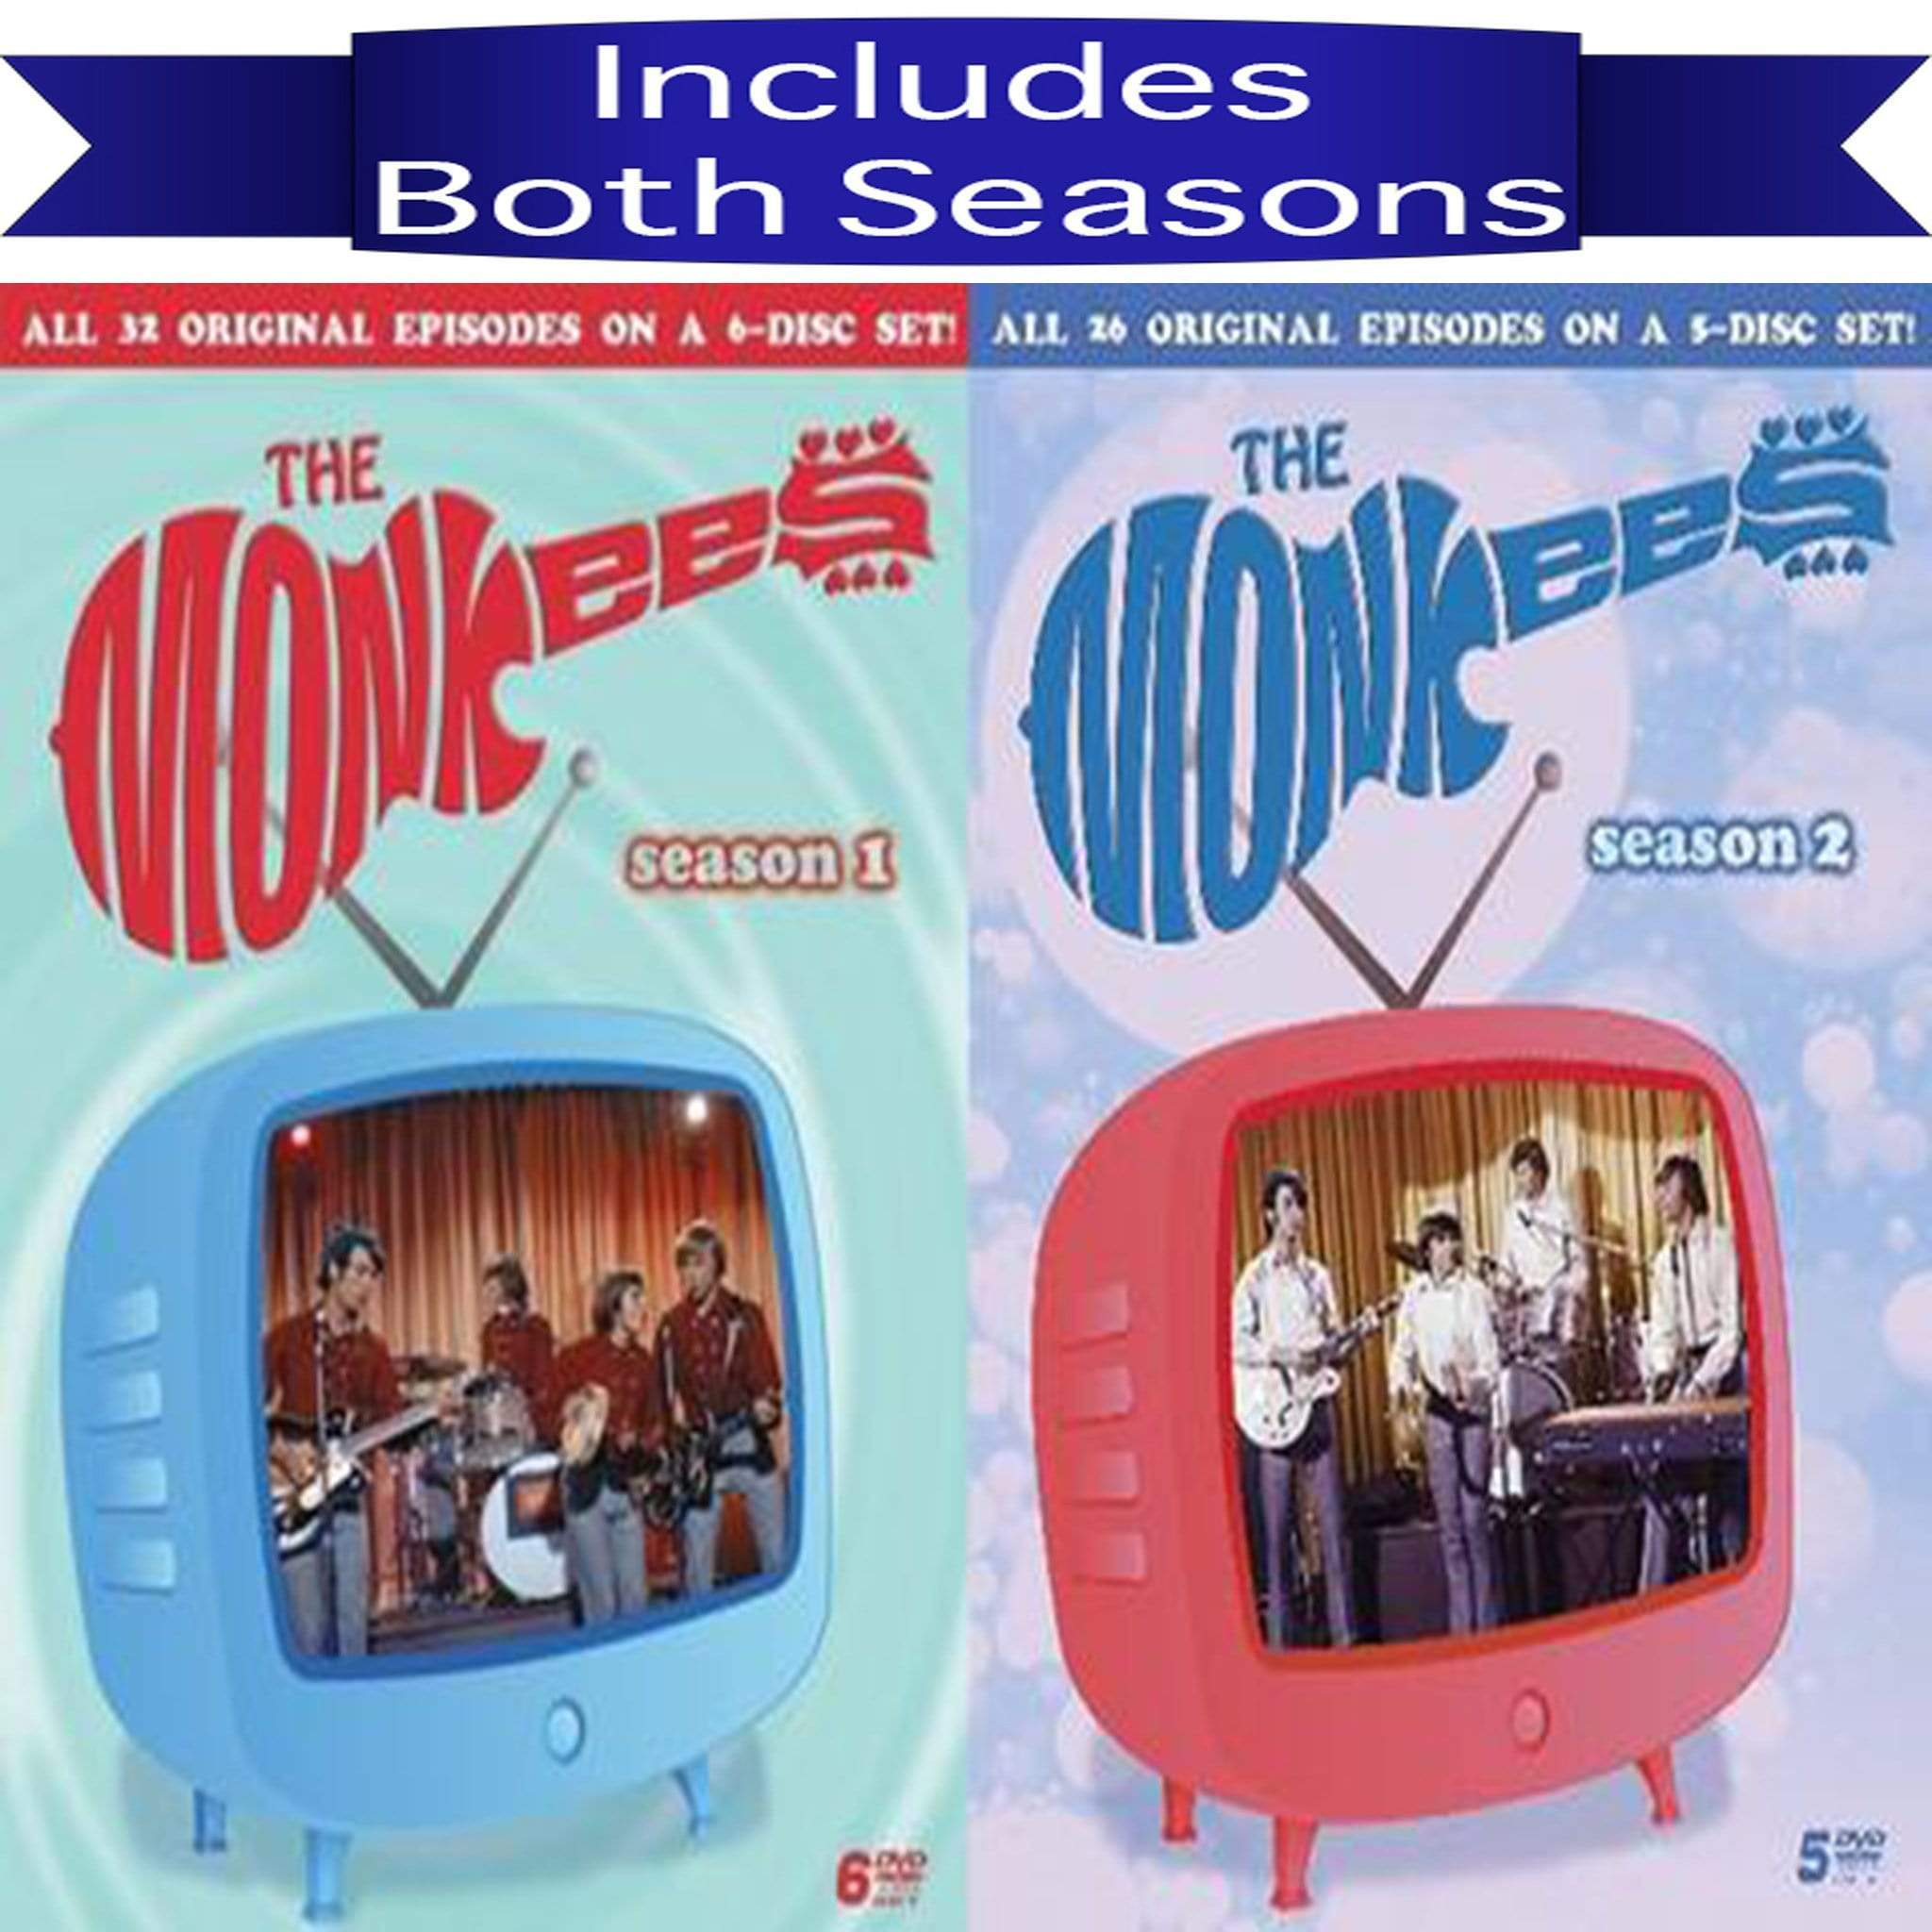 The Monkees Seasons 1-2 (DVD) Eagle Productions DVDs & Blu-ray Discs > DVDs